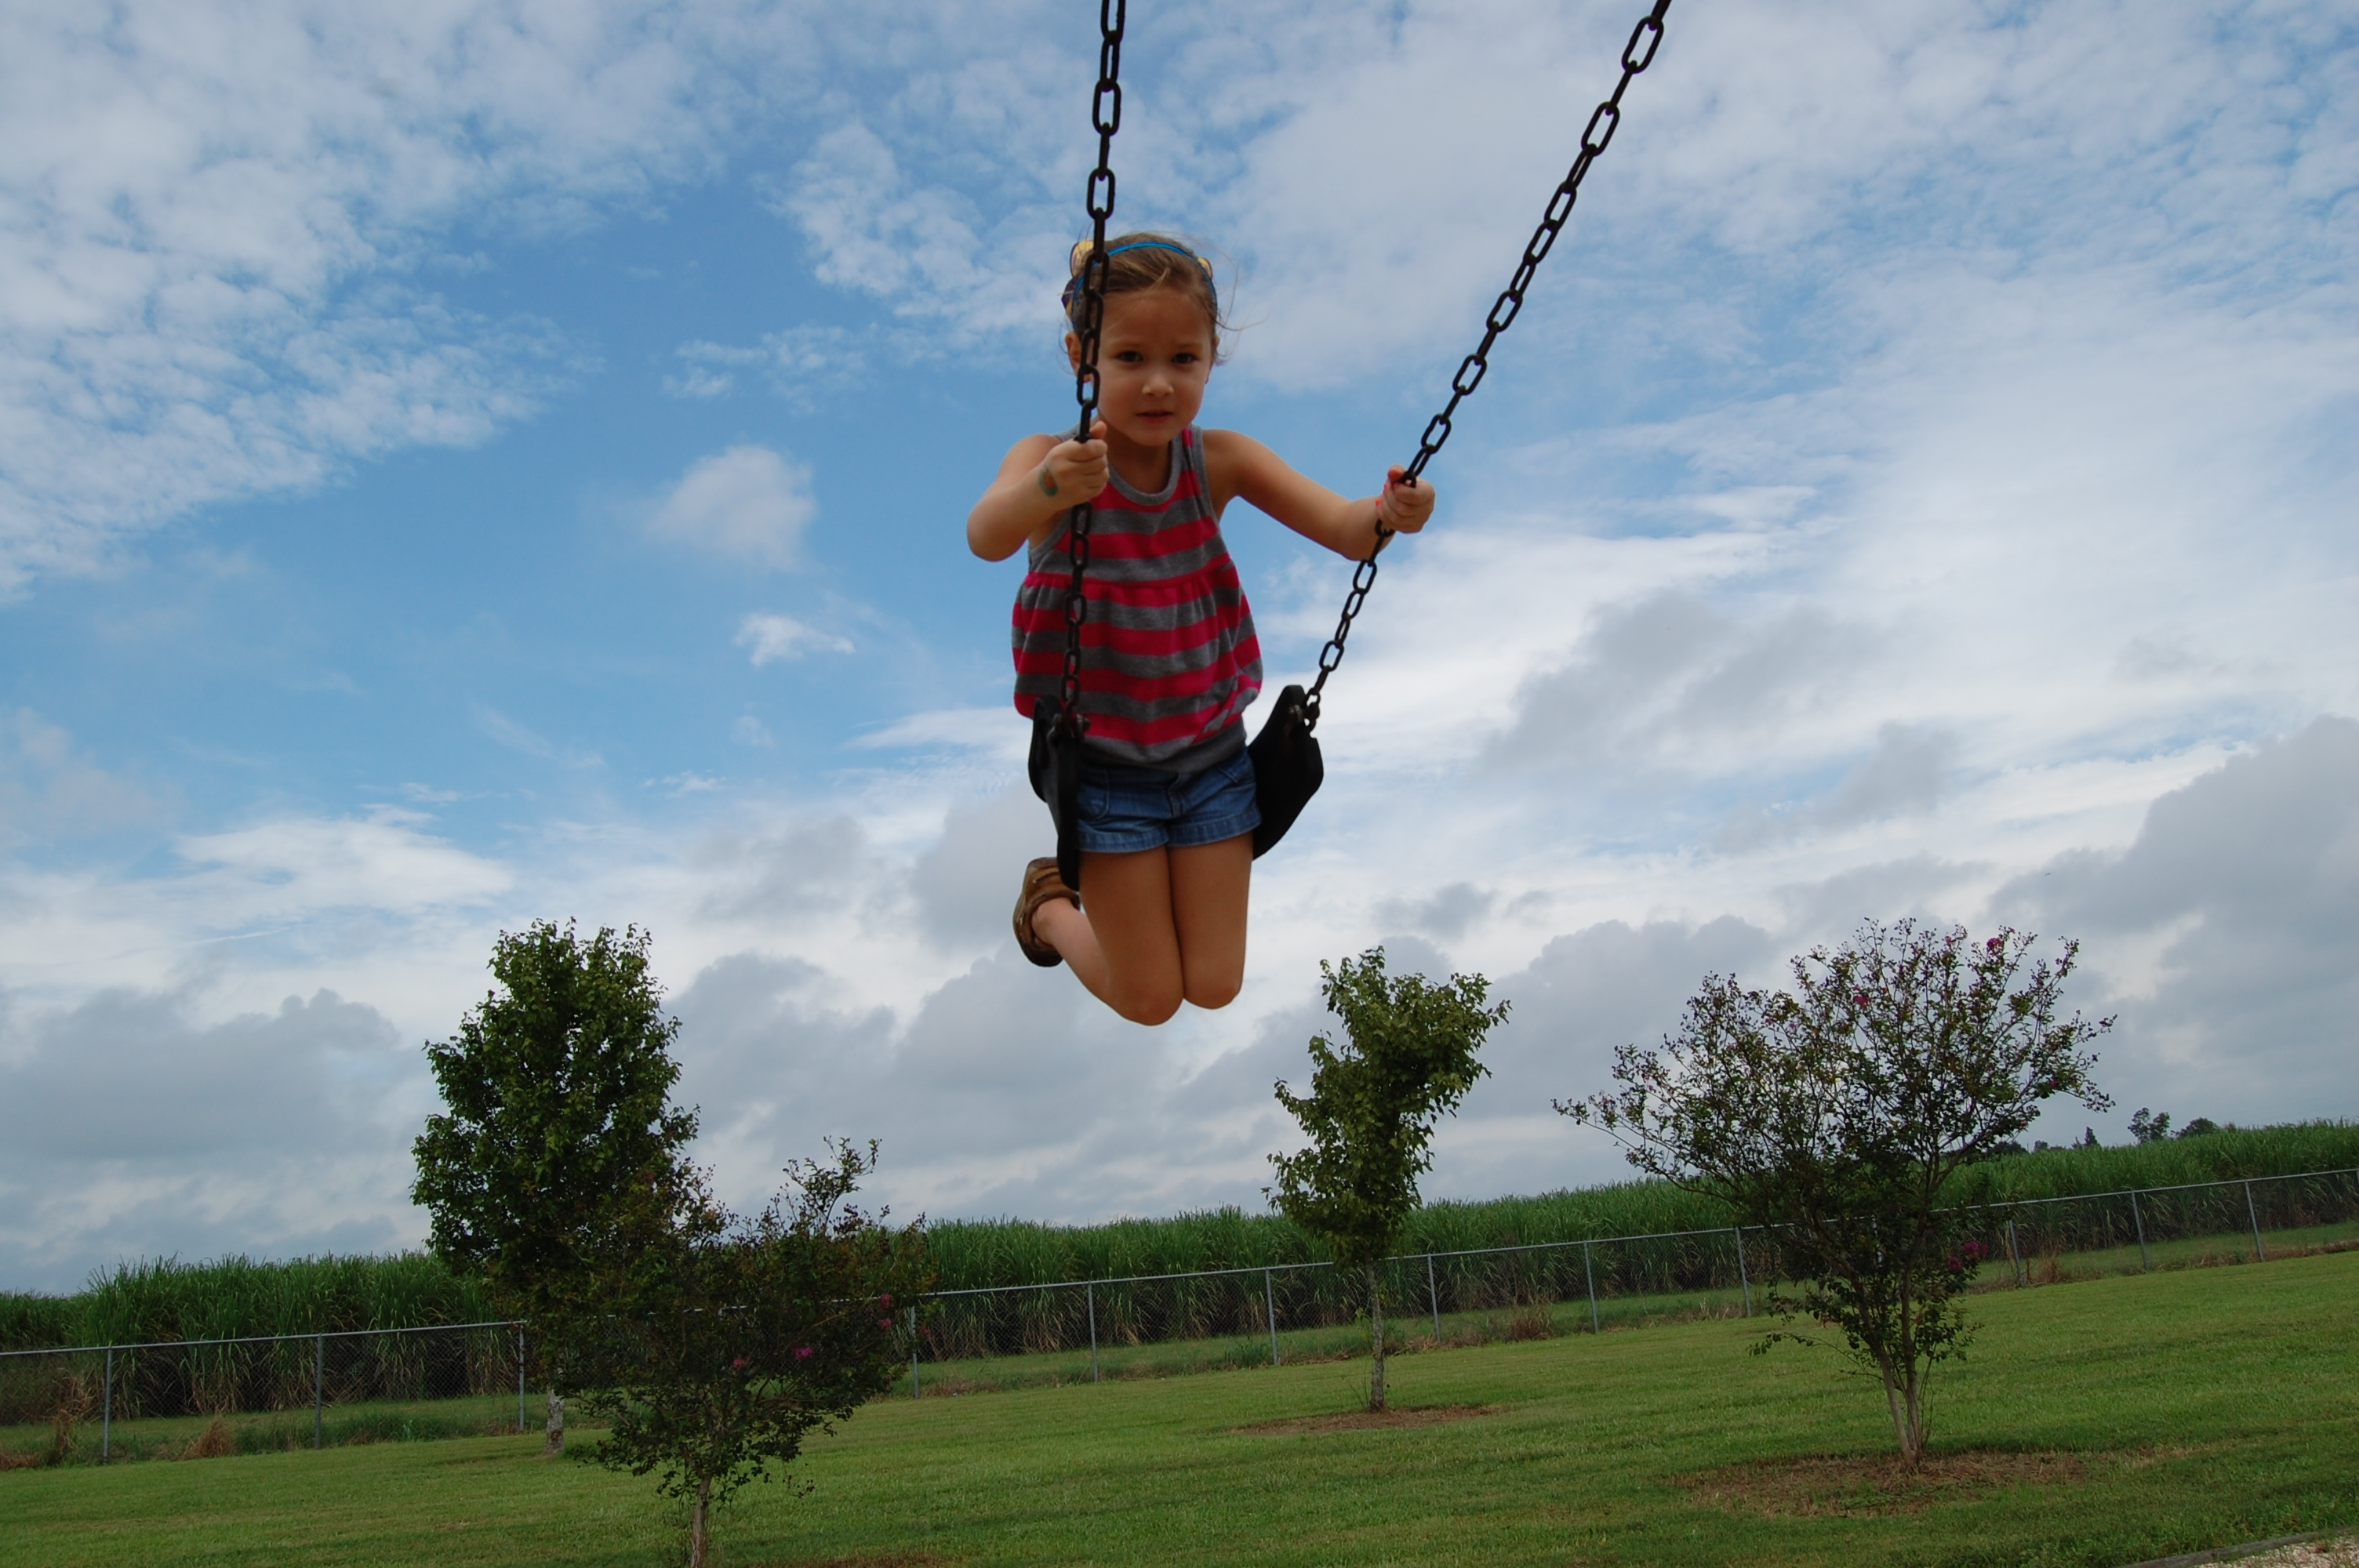 Swing Life Sty 28 Images To Swing Life Away By